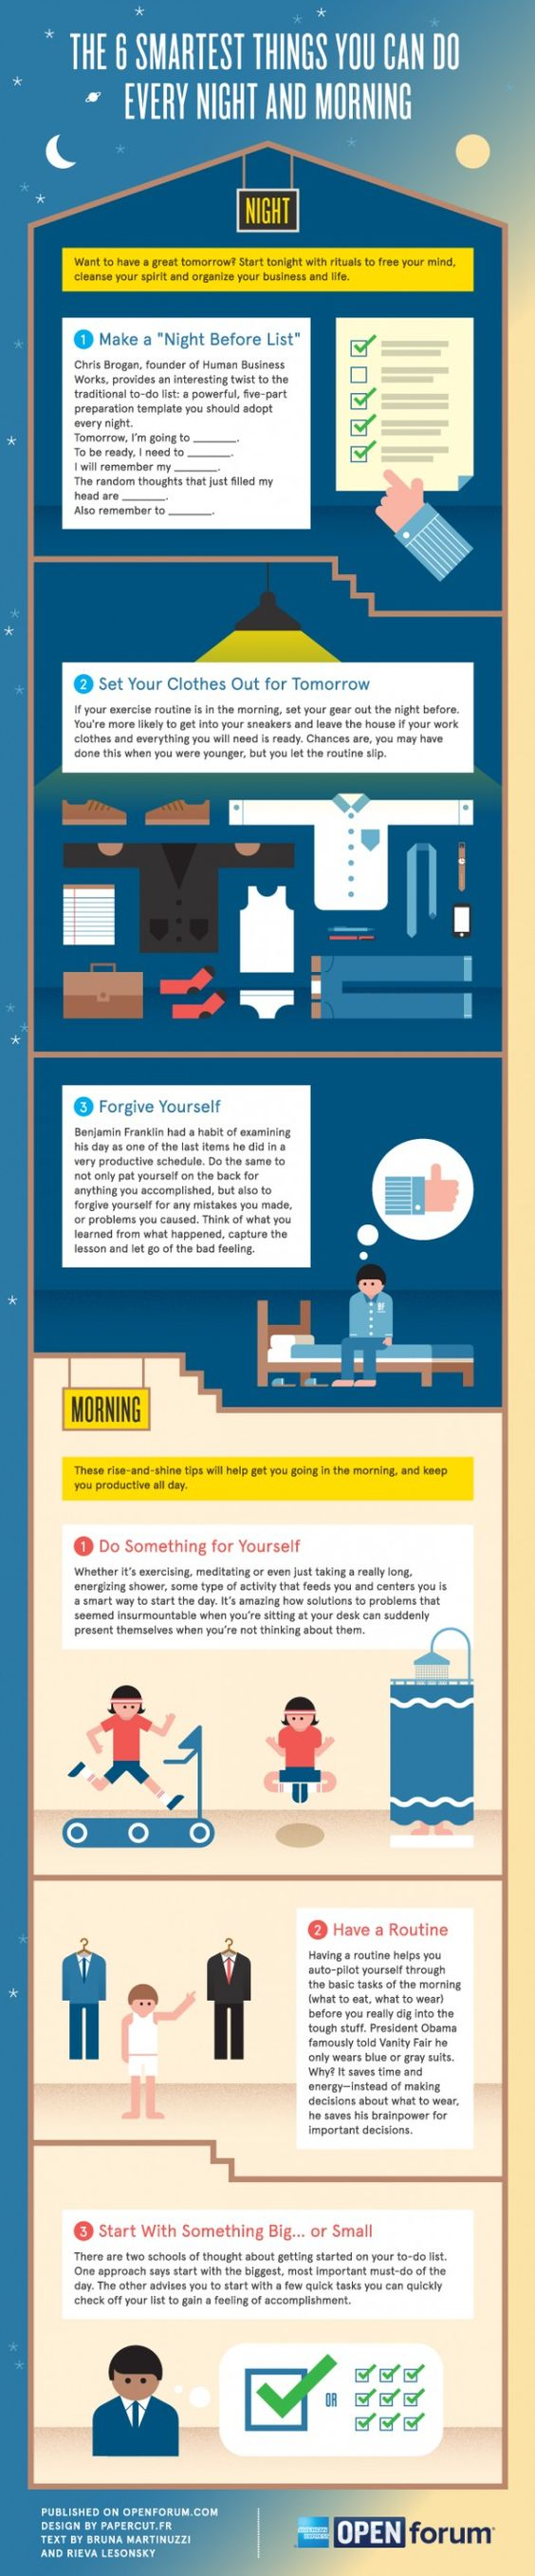 The Smartest Things You Can Do Every Night and Morning #habits #students